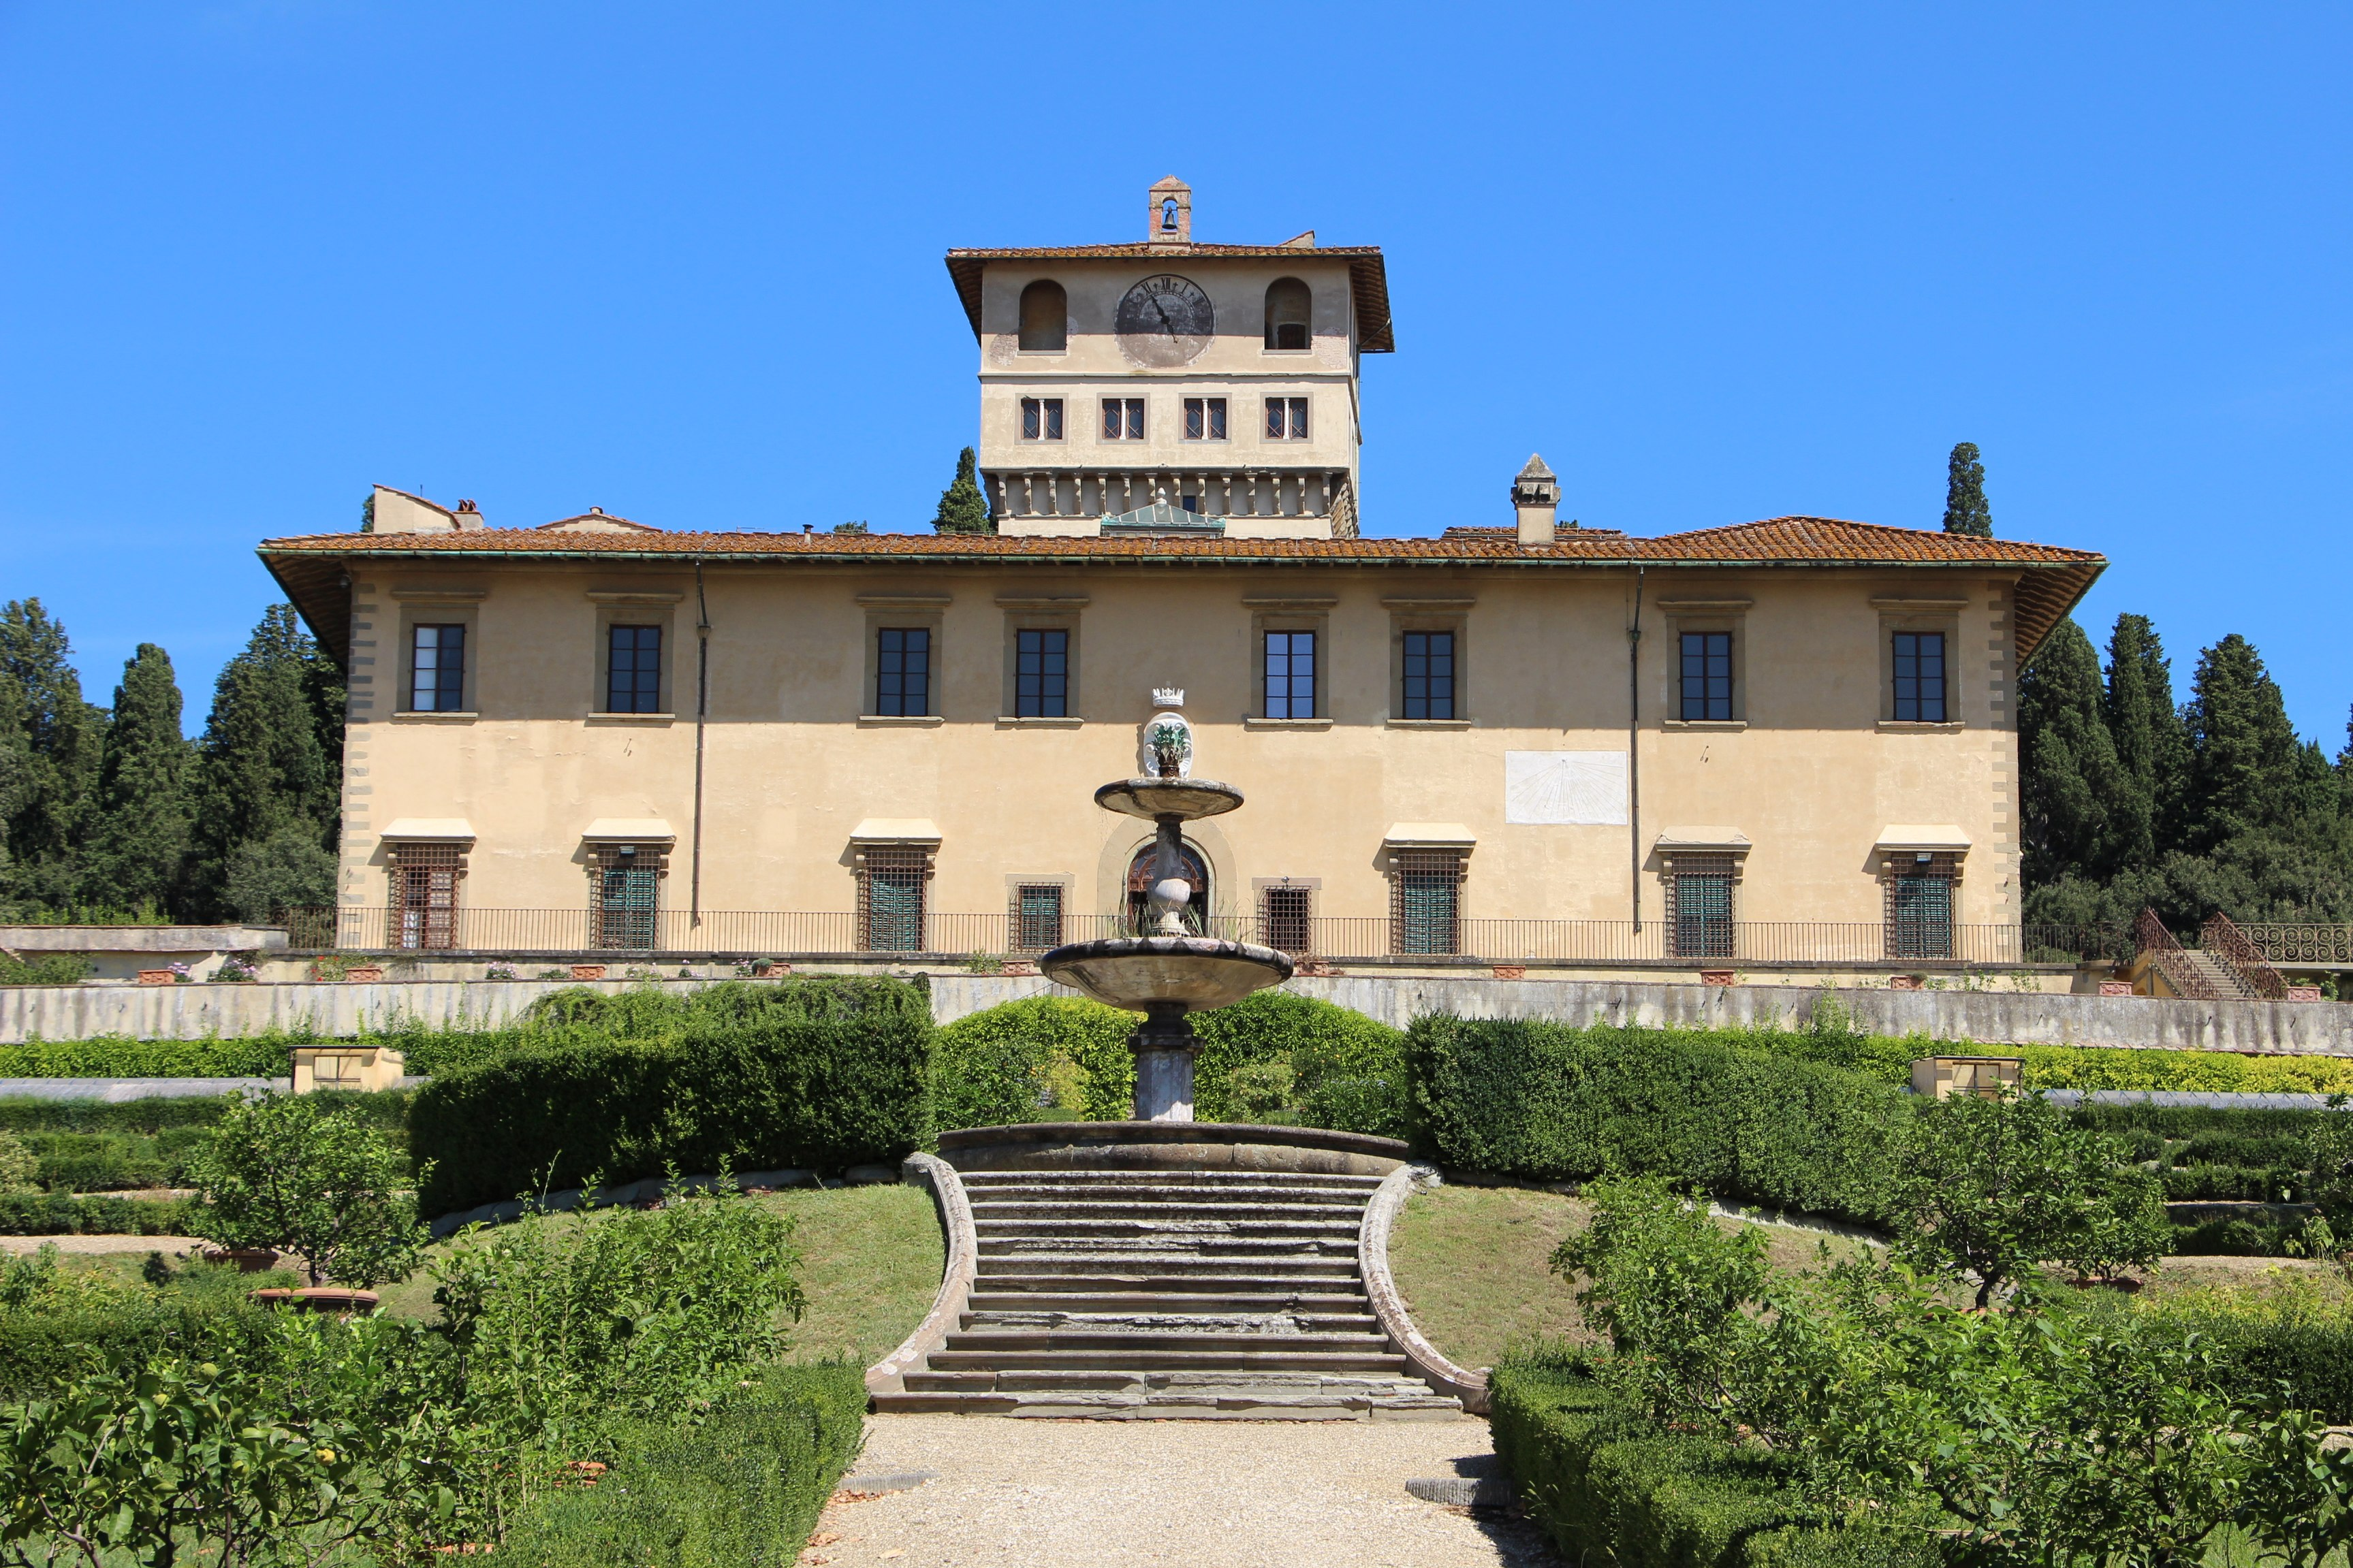 Villa La Petraia - The complete information and online sale